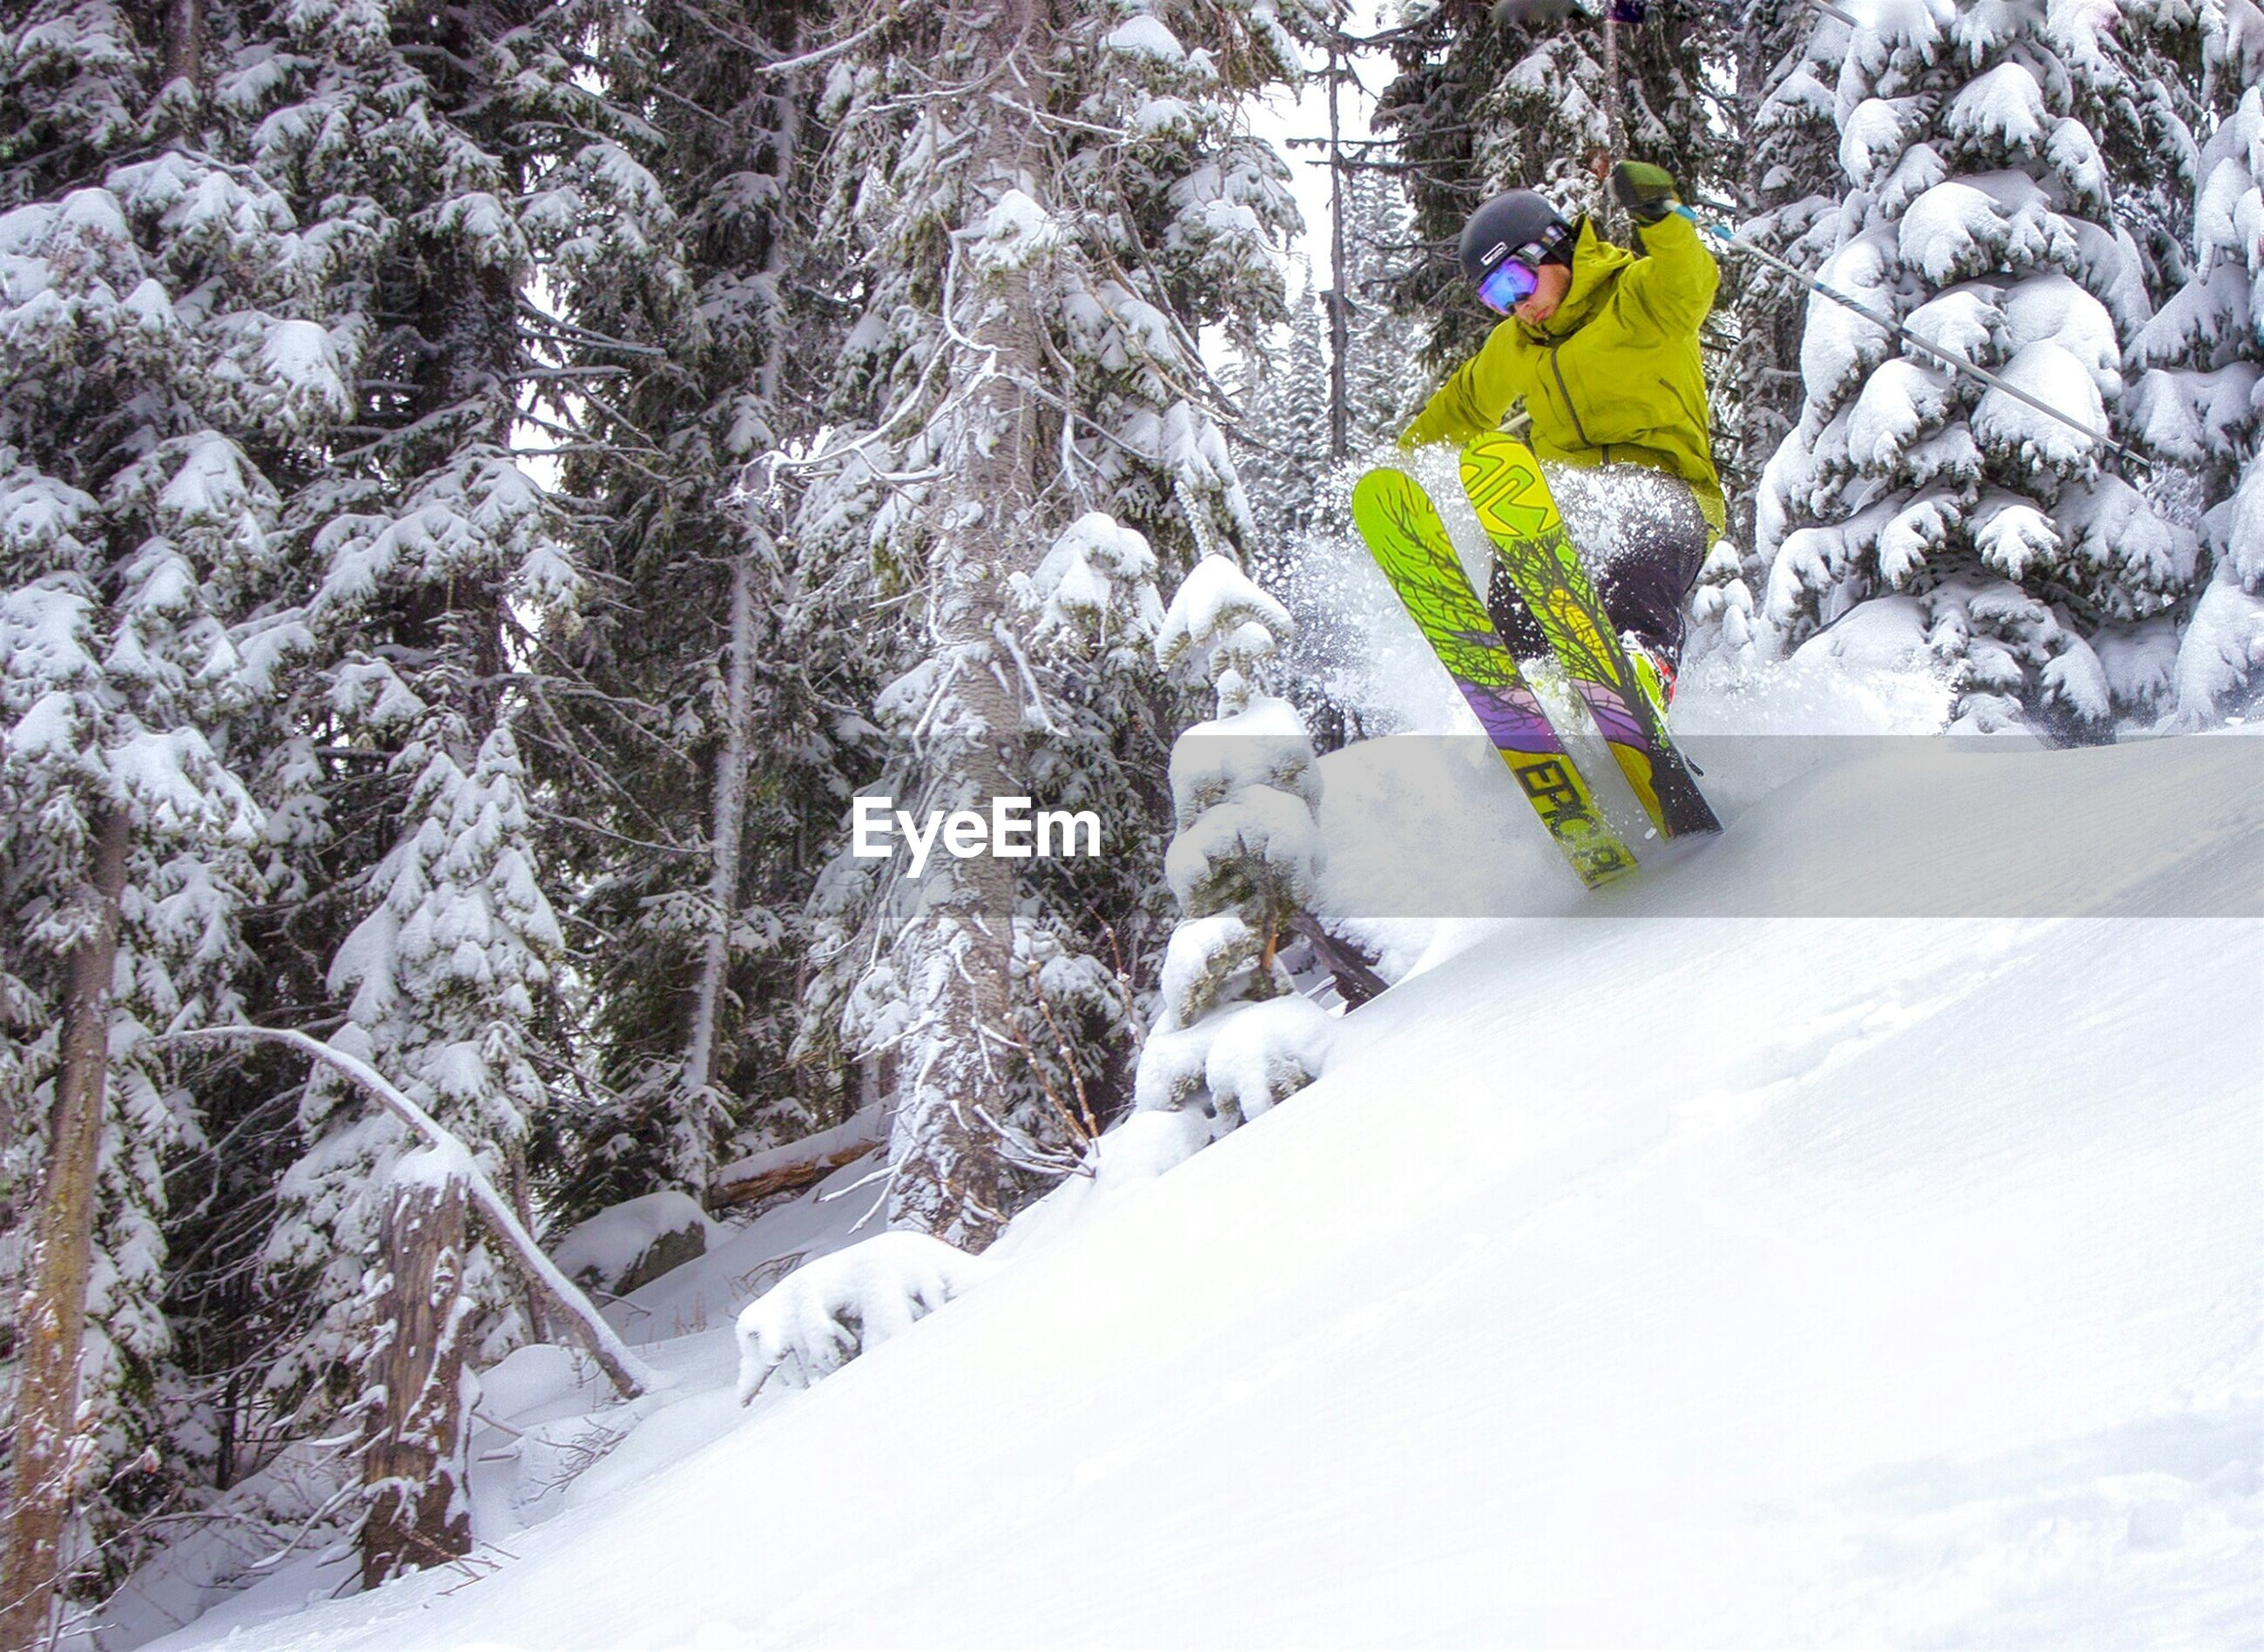 MAN SKIING ON SNOW COVERED TREES